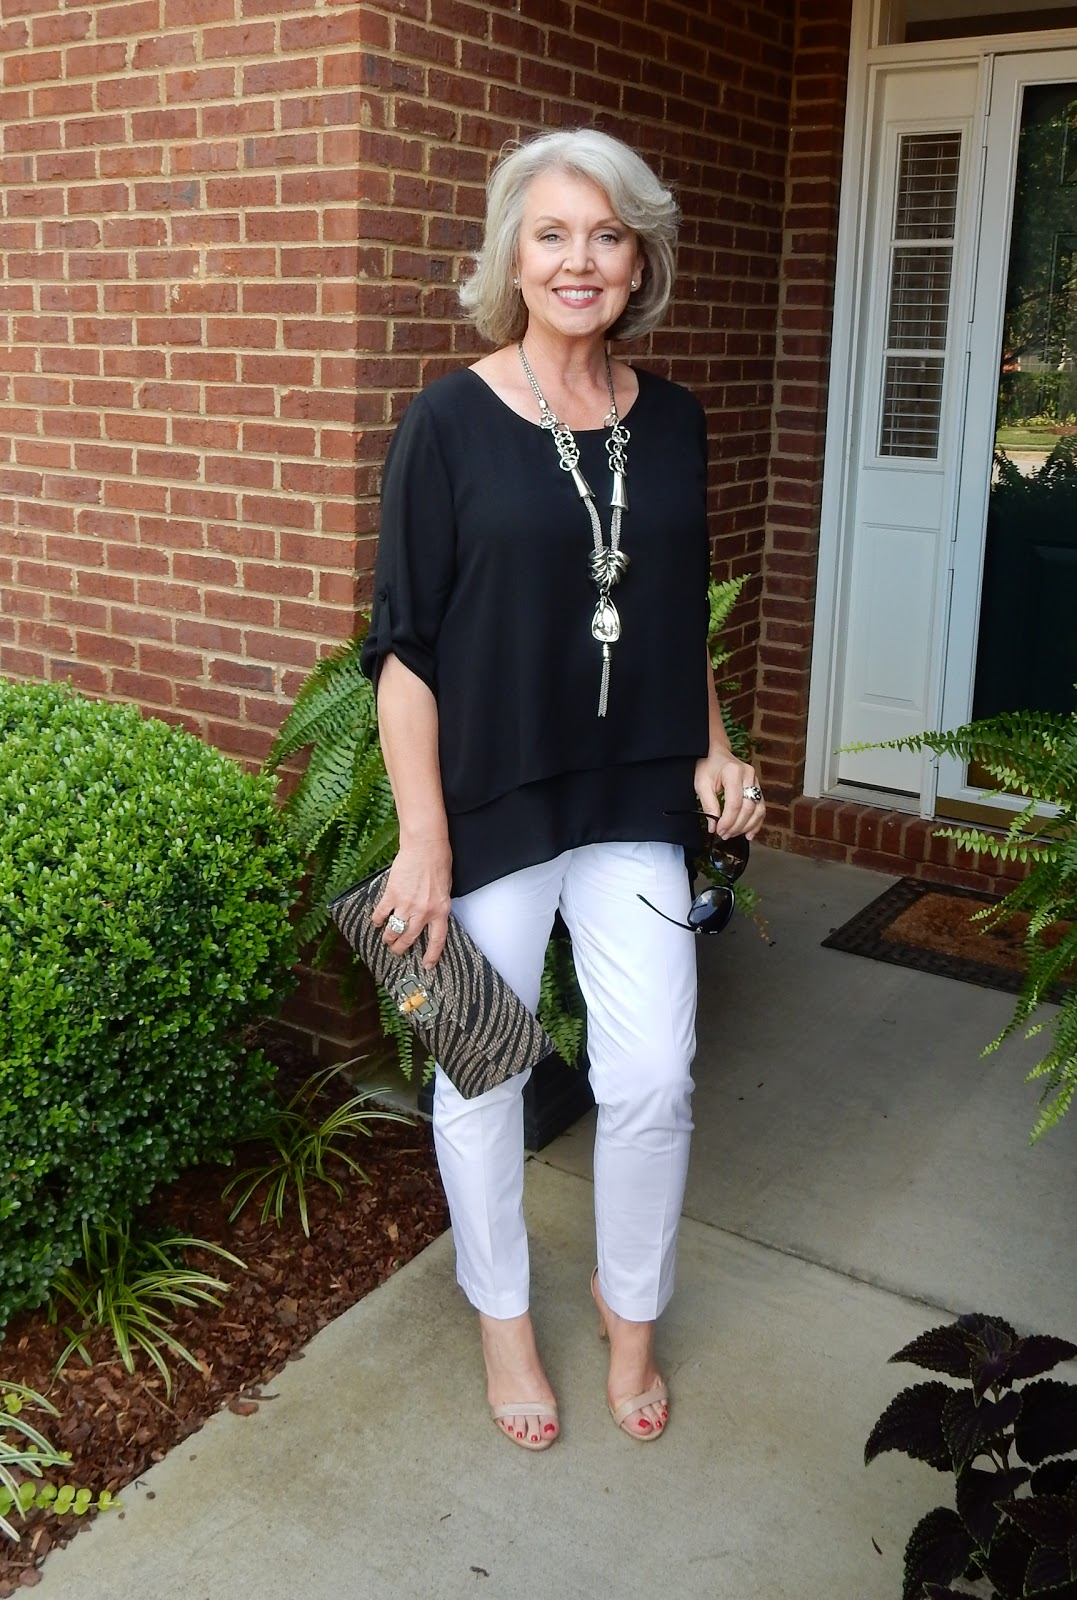 Casual fashion for over 60 - Jpg 1077 1600 Fifty Plus Pinterest 50 Fashion Clothes And 50th